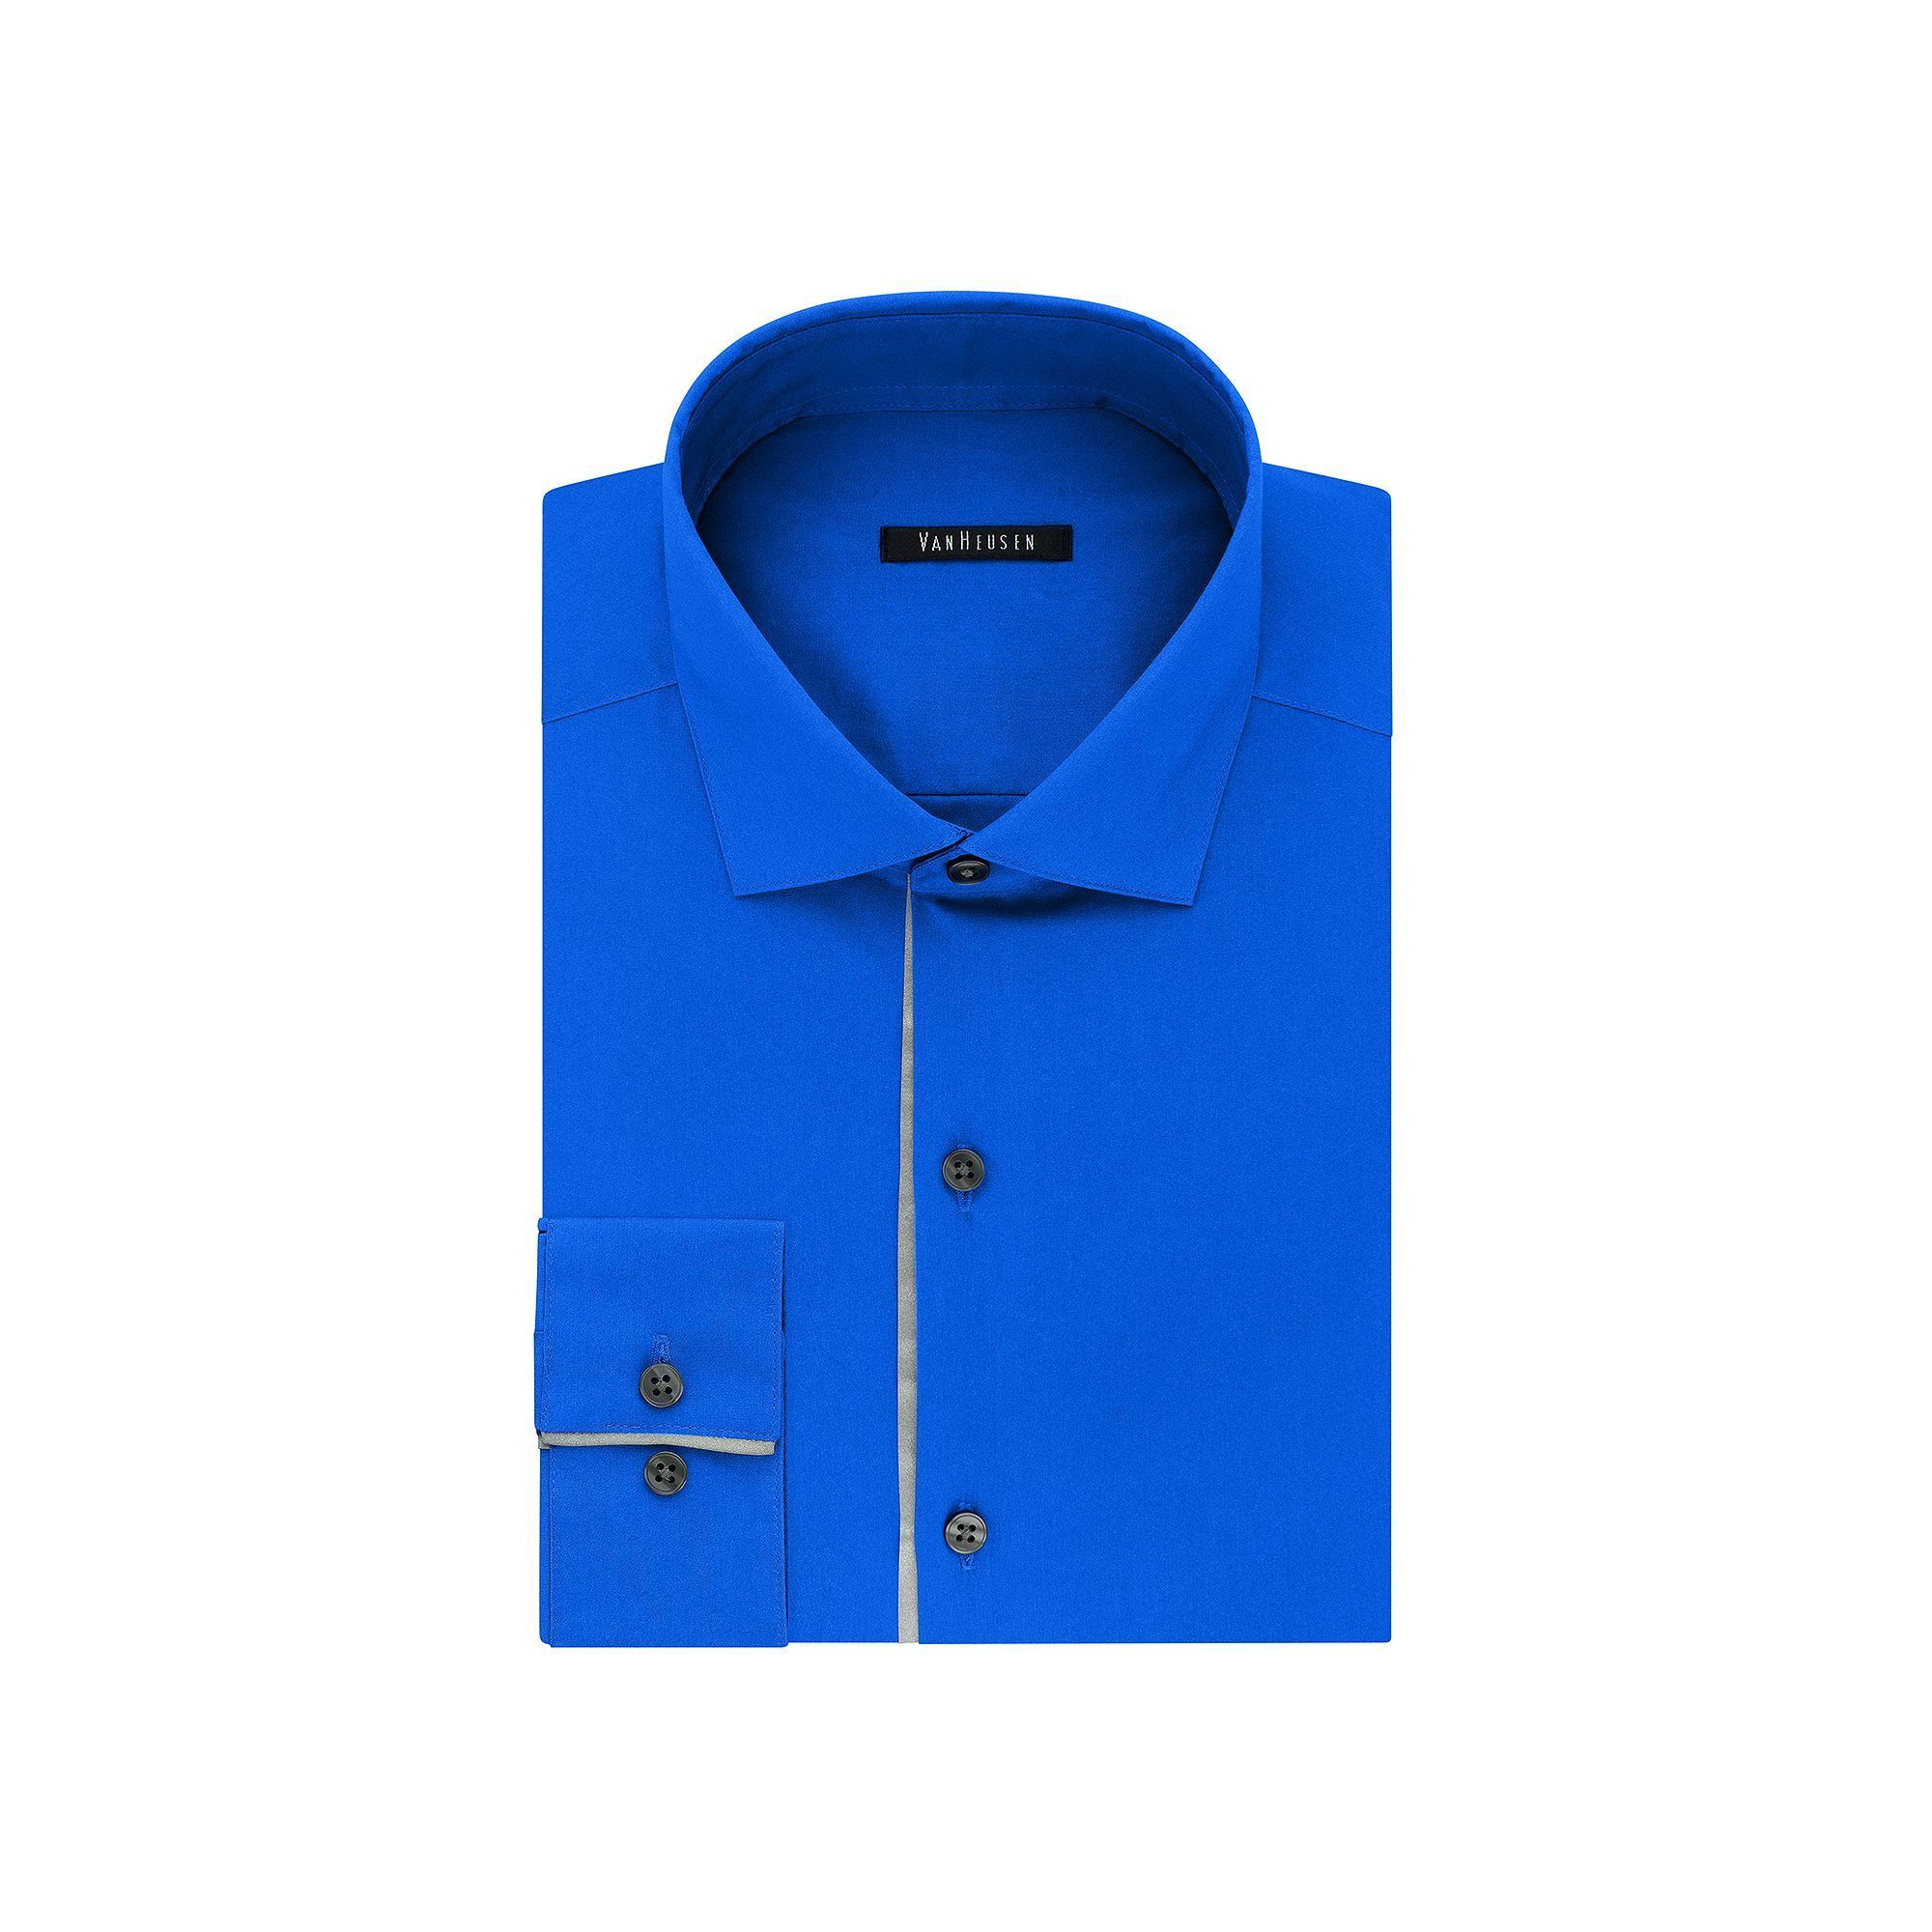 Mens Van Heusen Slim Fit Flashfx Dress Shirt Products Slim